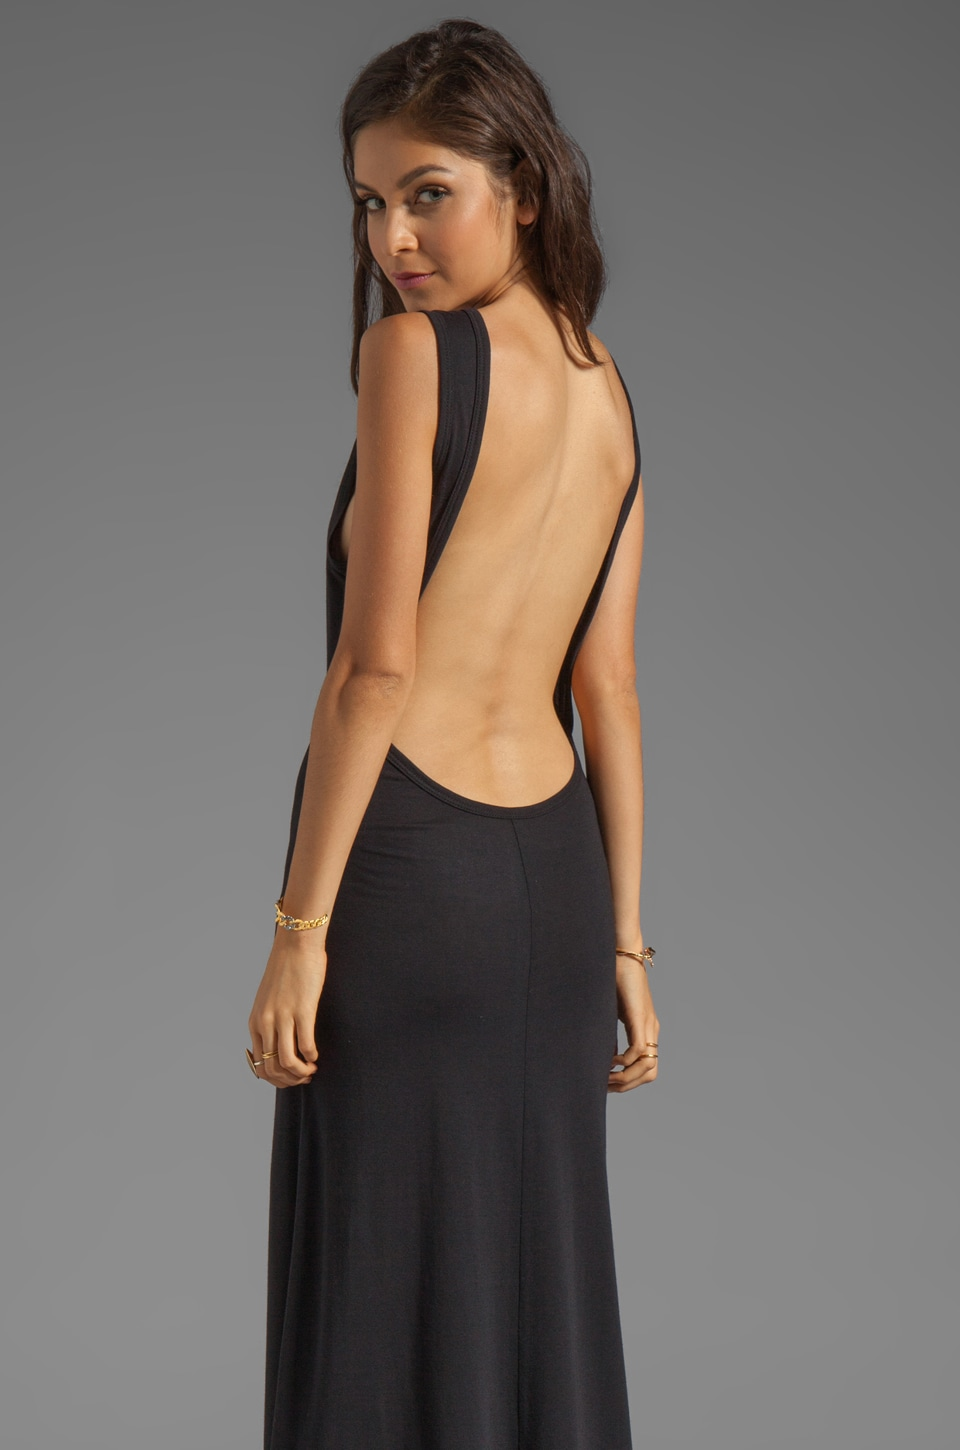 Blue Life Open Back Maxi Dress in Black